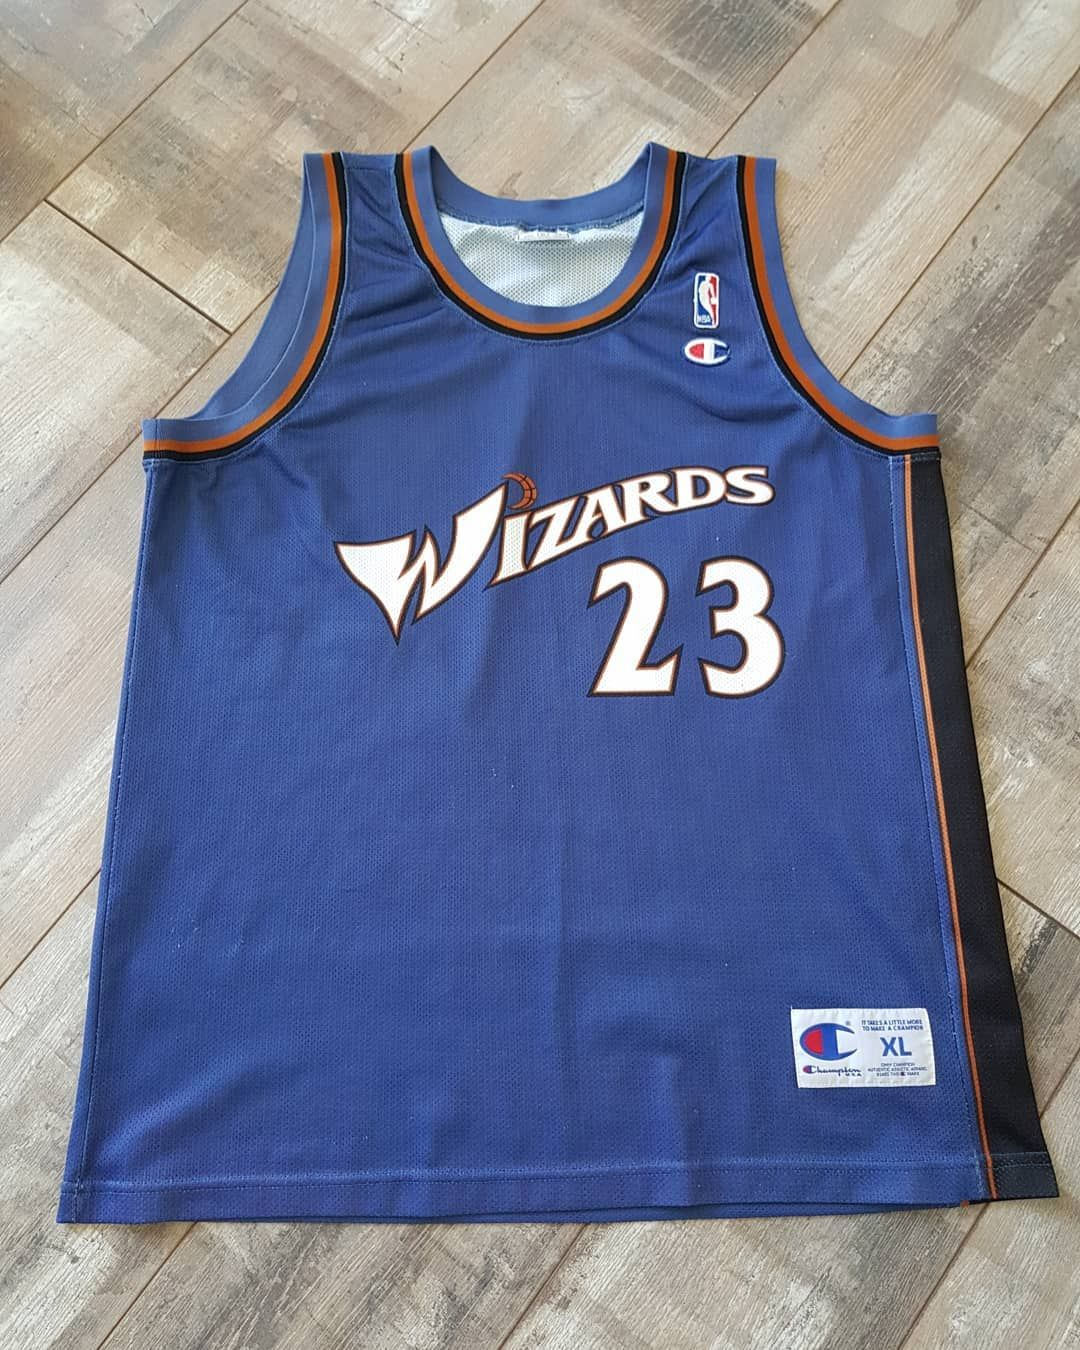 detailed look c6bf3 ccb36 promo code for washington wizards old jersey 0f395 4af51